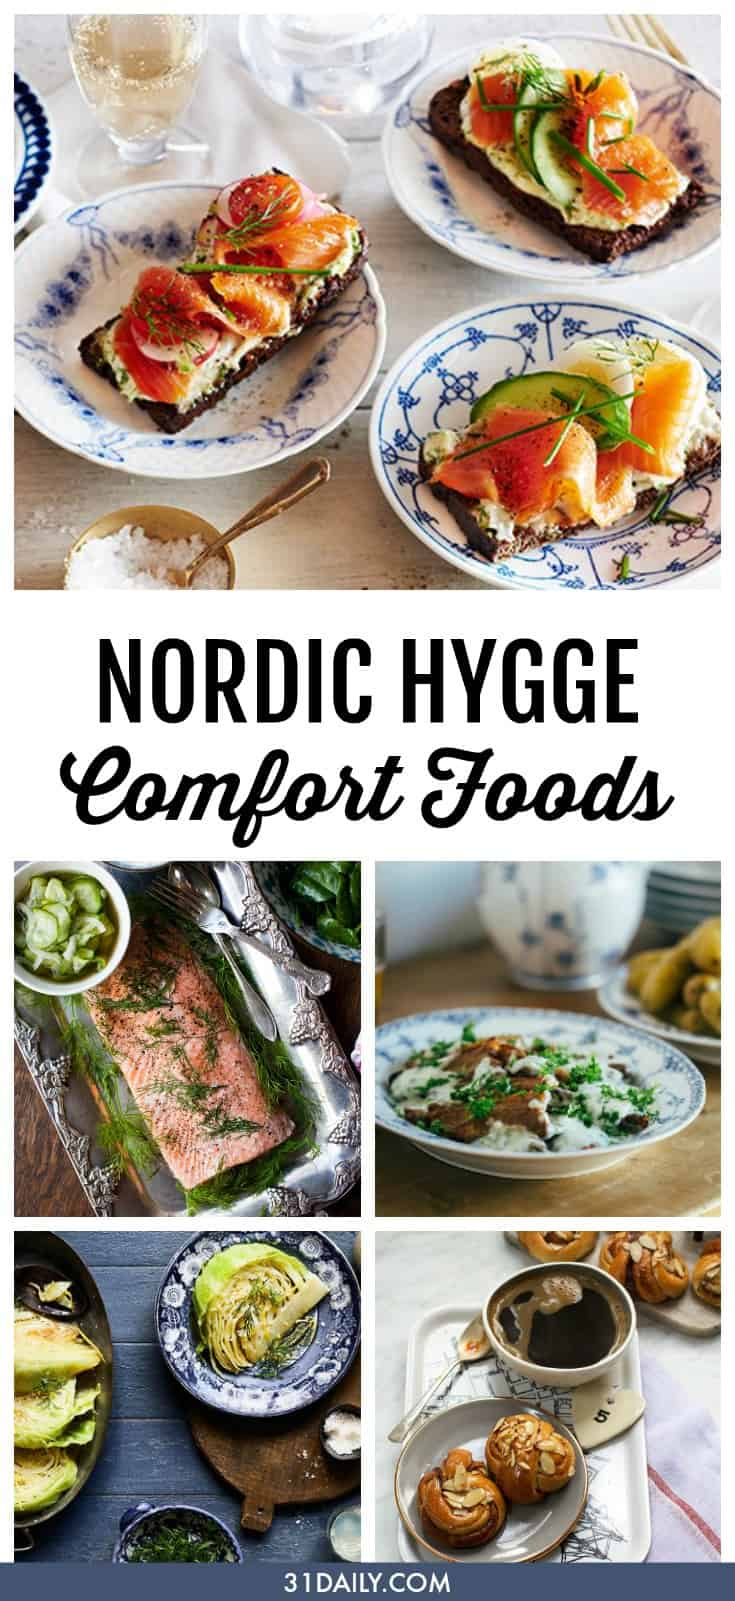 Comfort Foods to Inspire Nordic Hygge | 31Daily.com